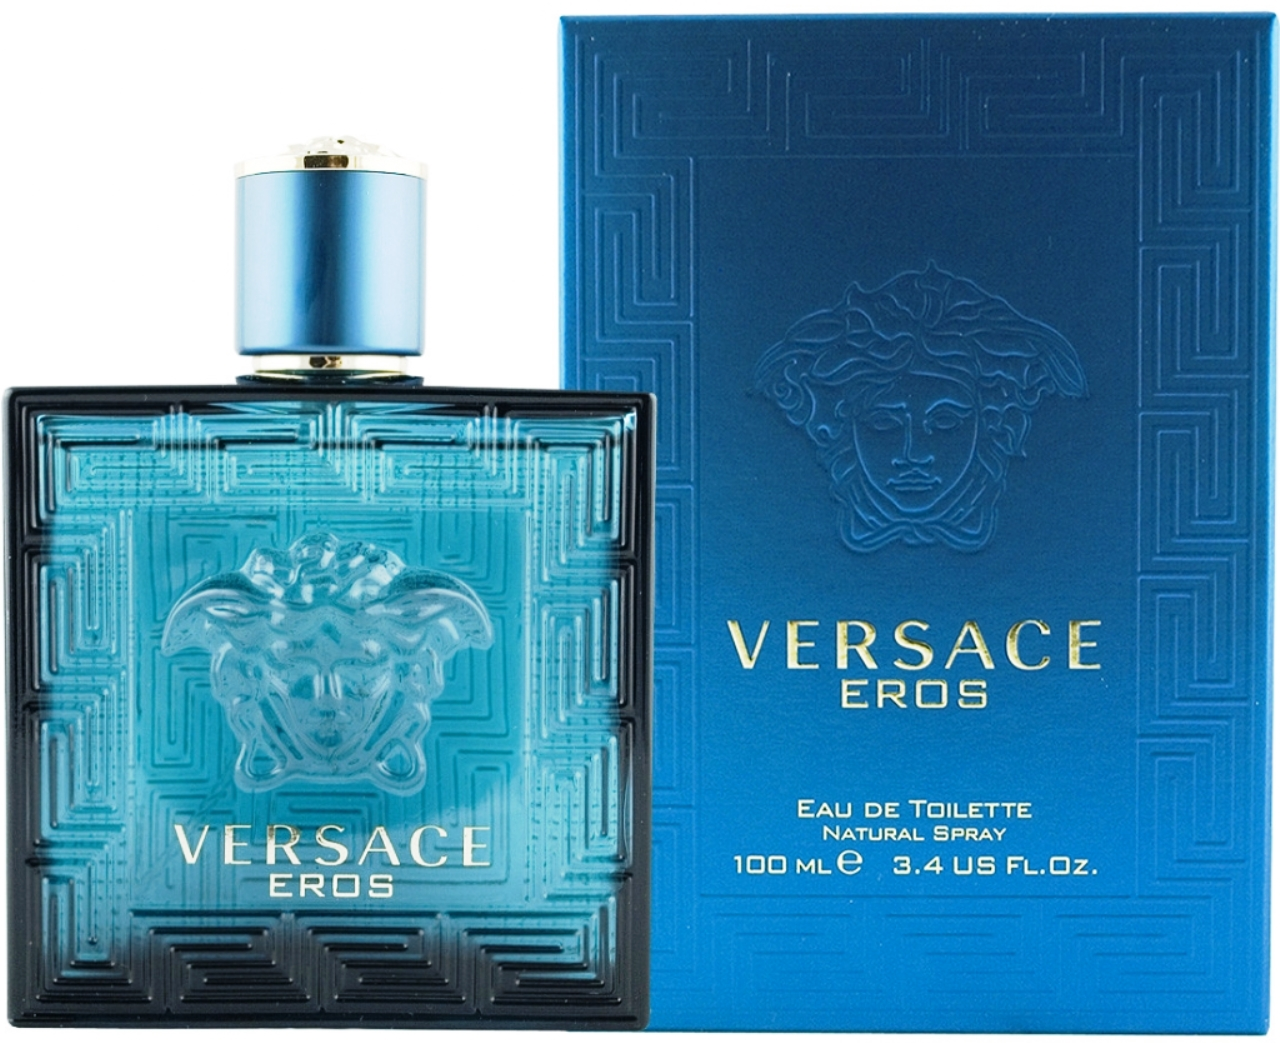 Versace Eros Eau de Toilette Spray 3.4oz 100ml